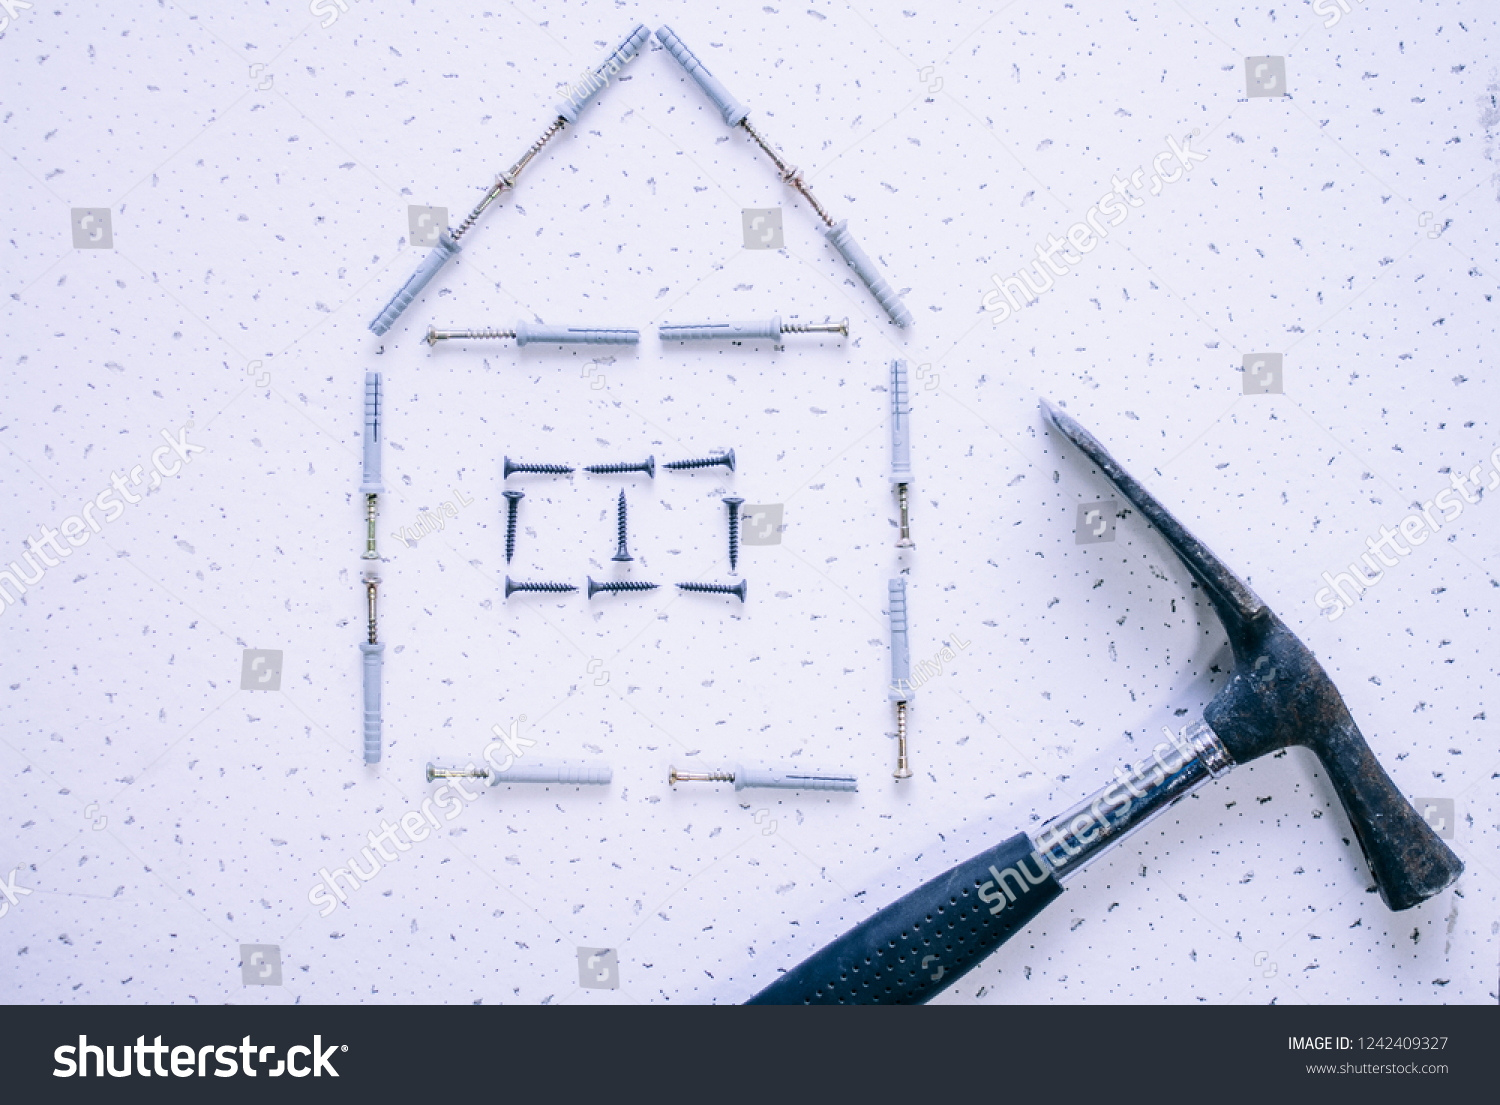 The House Of Hammer image house dowel nails hammer on stock photo (edit now